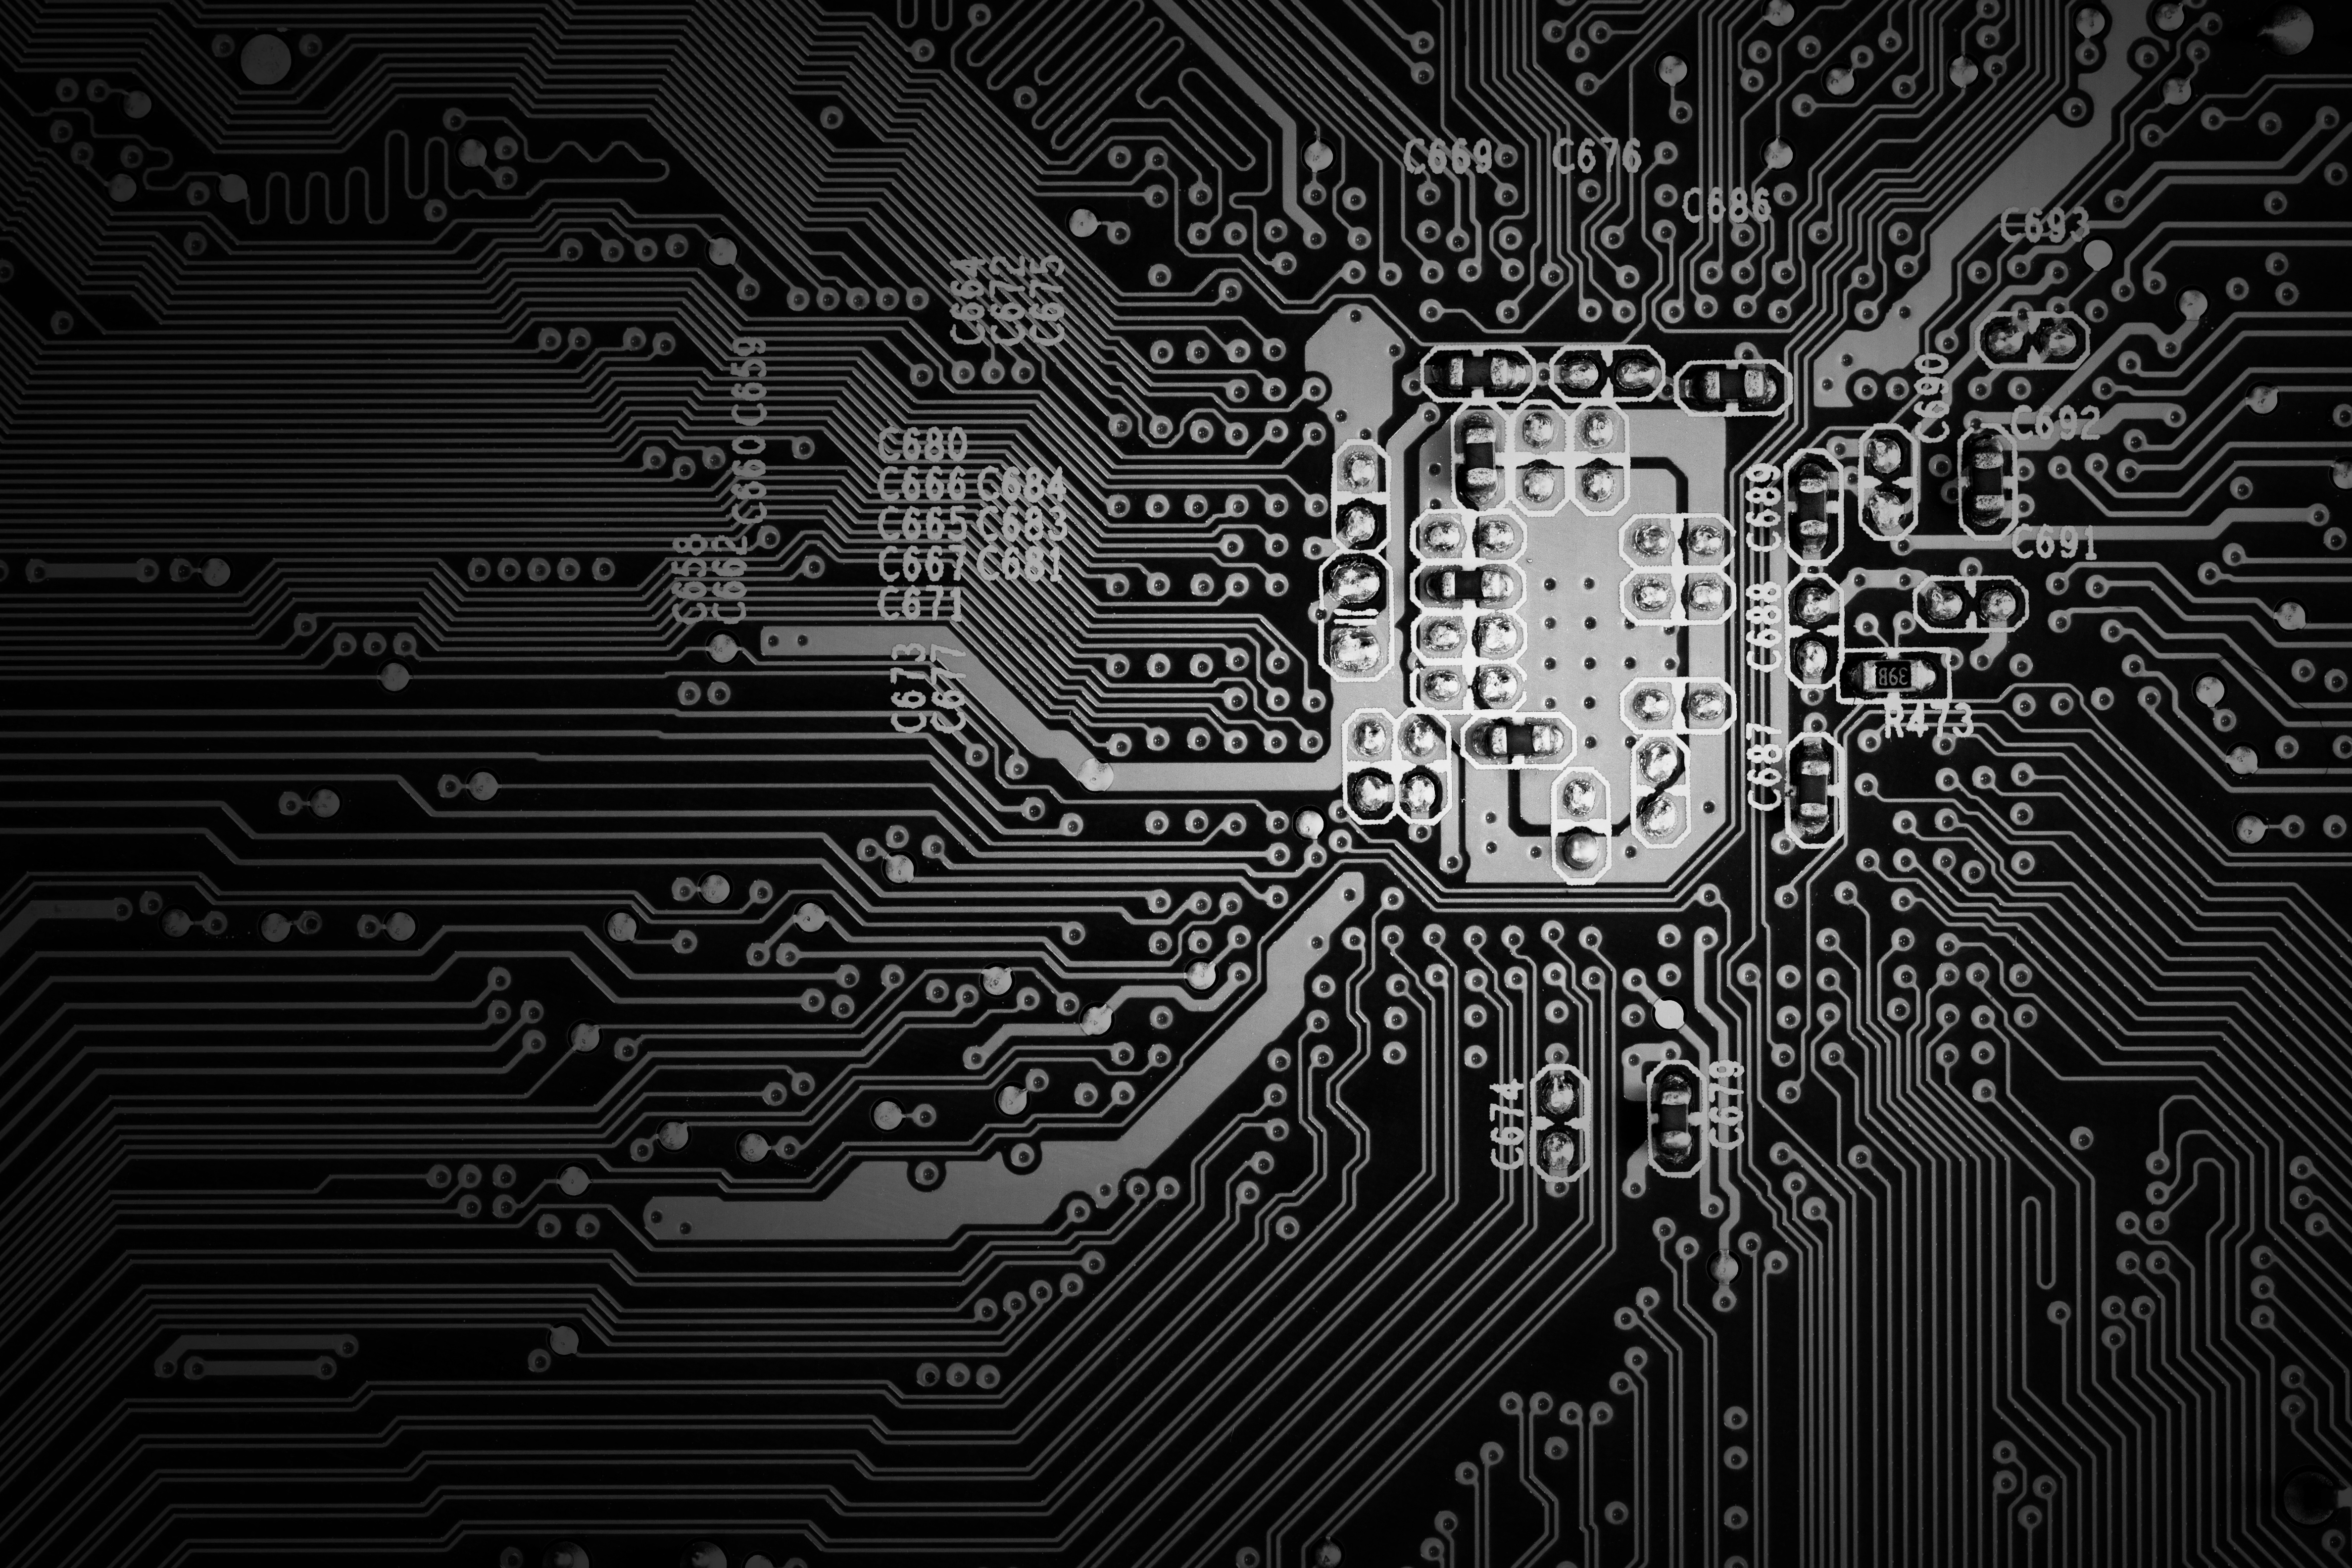 135599 download wallpaper Chip, Technology, Bw, Chb, Technologies, Schemes, Circuitry screensavers and pictures for free